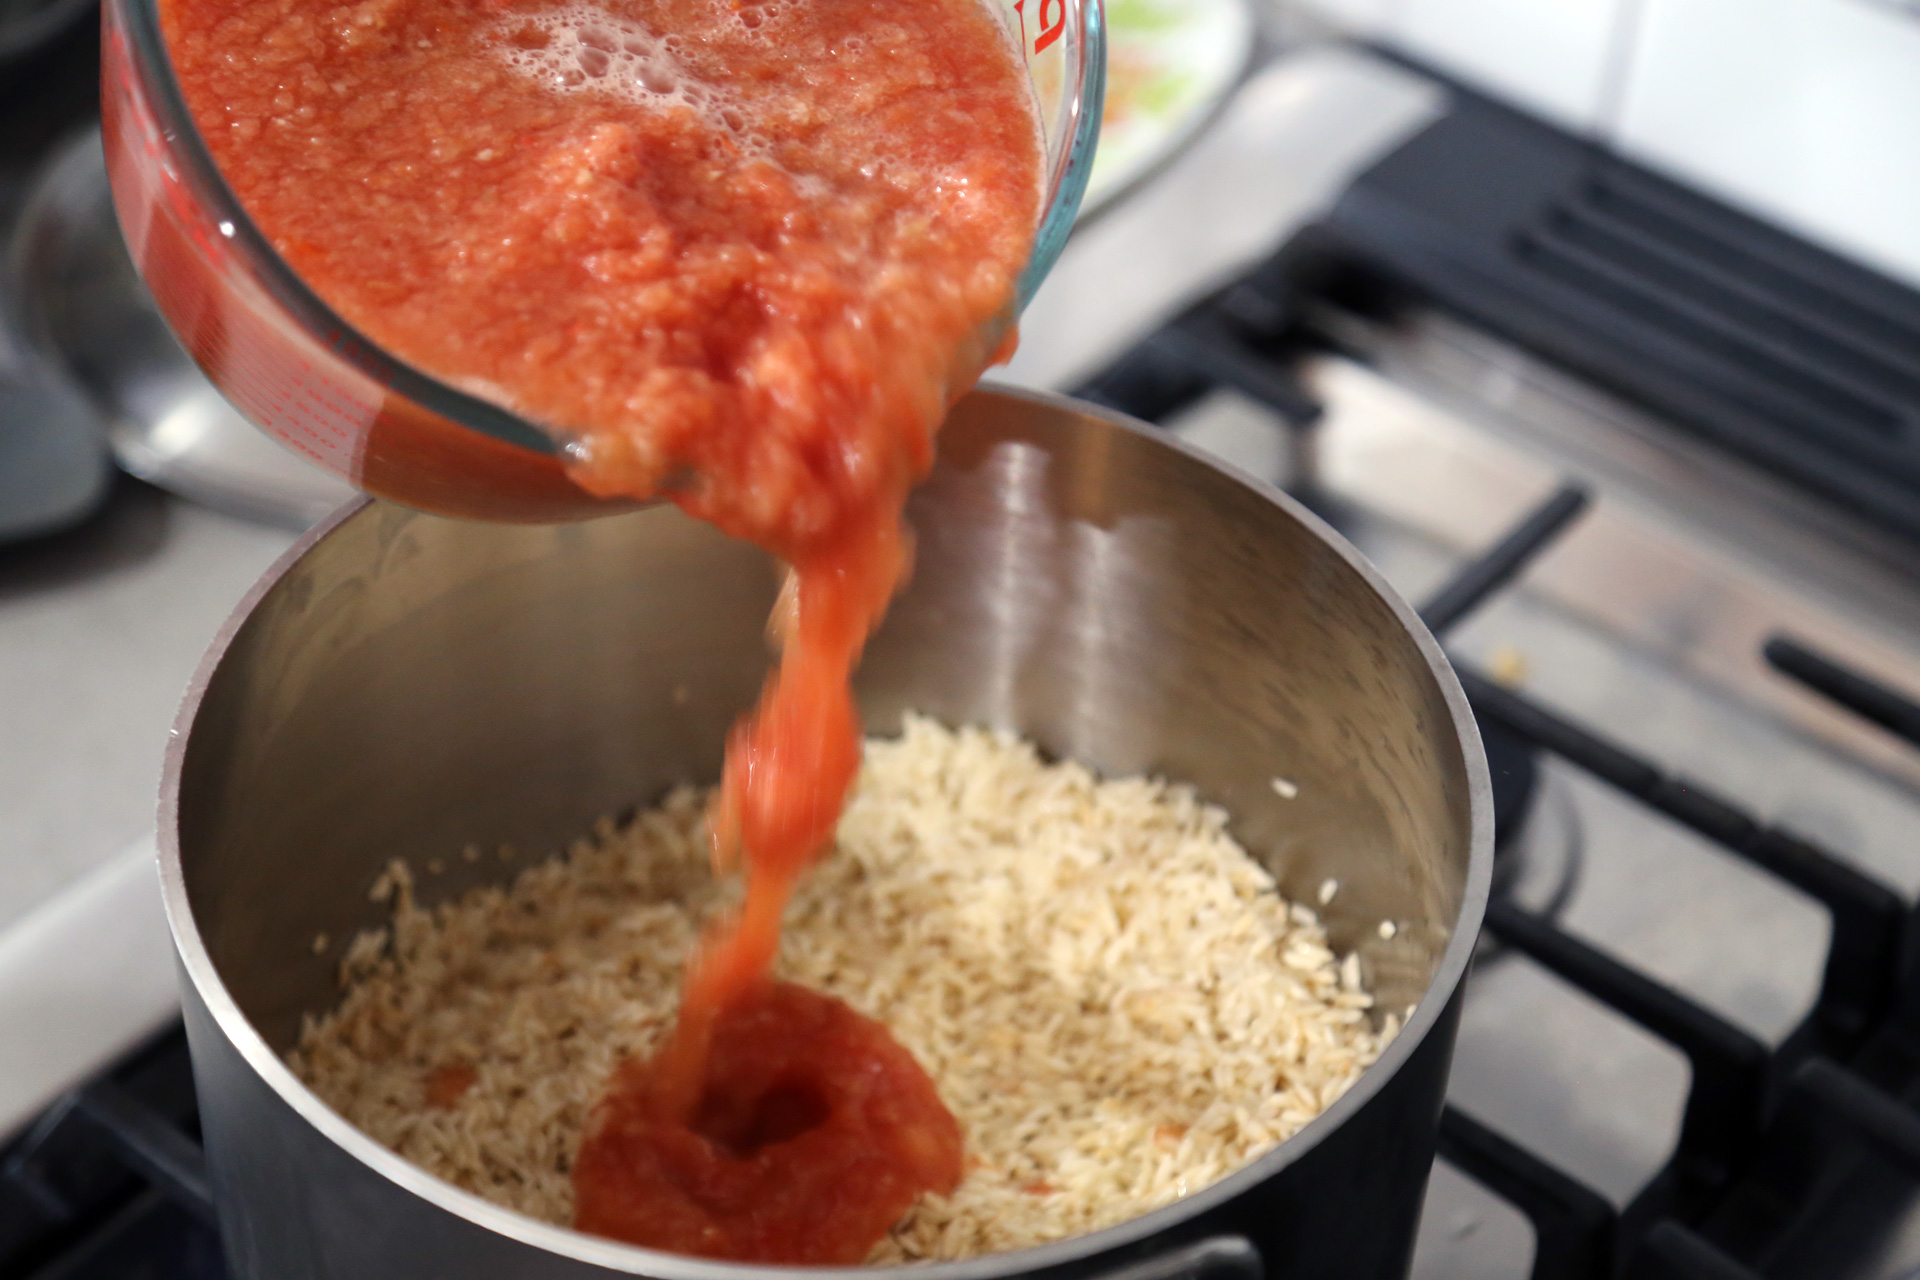 Pour the tomato mixture over the rice.